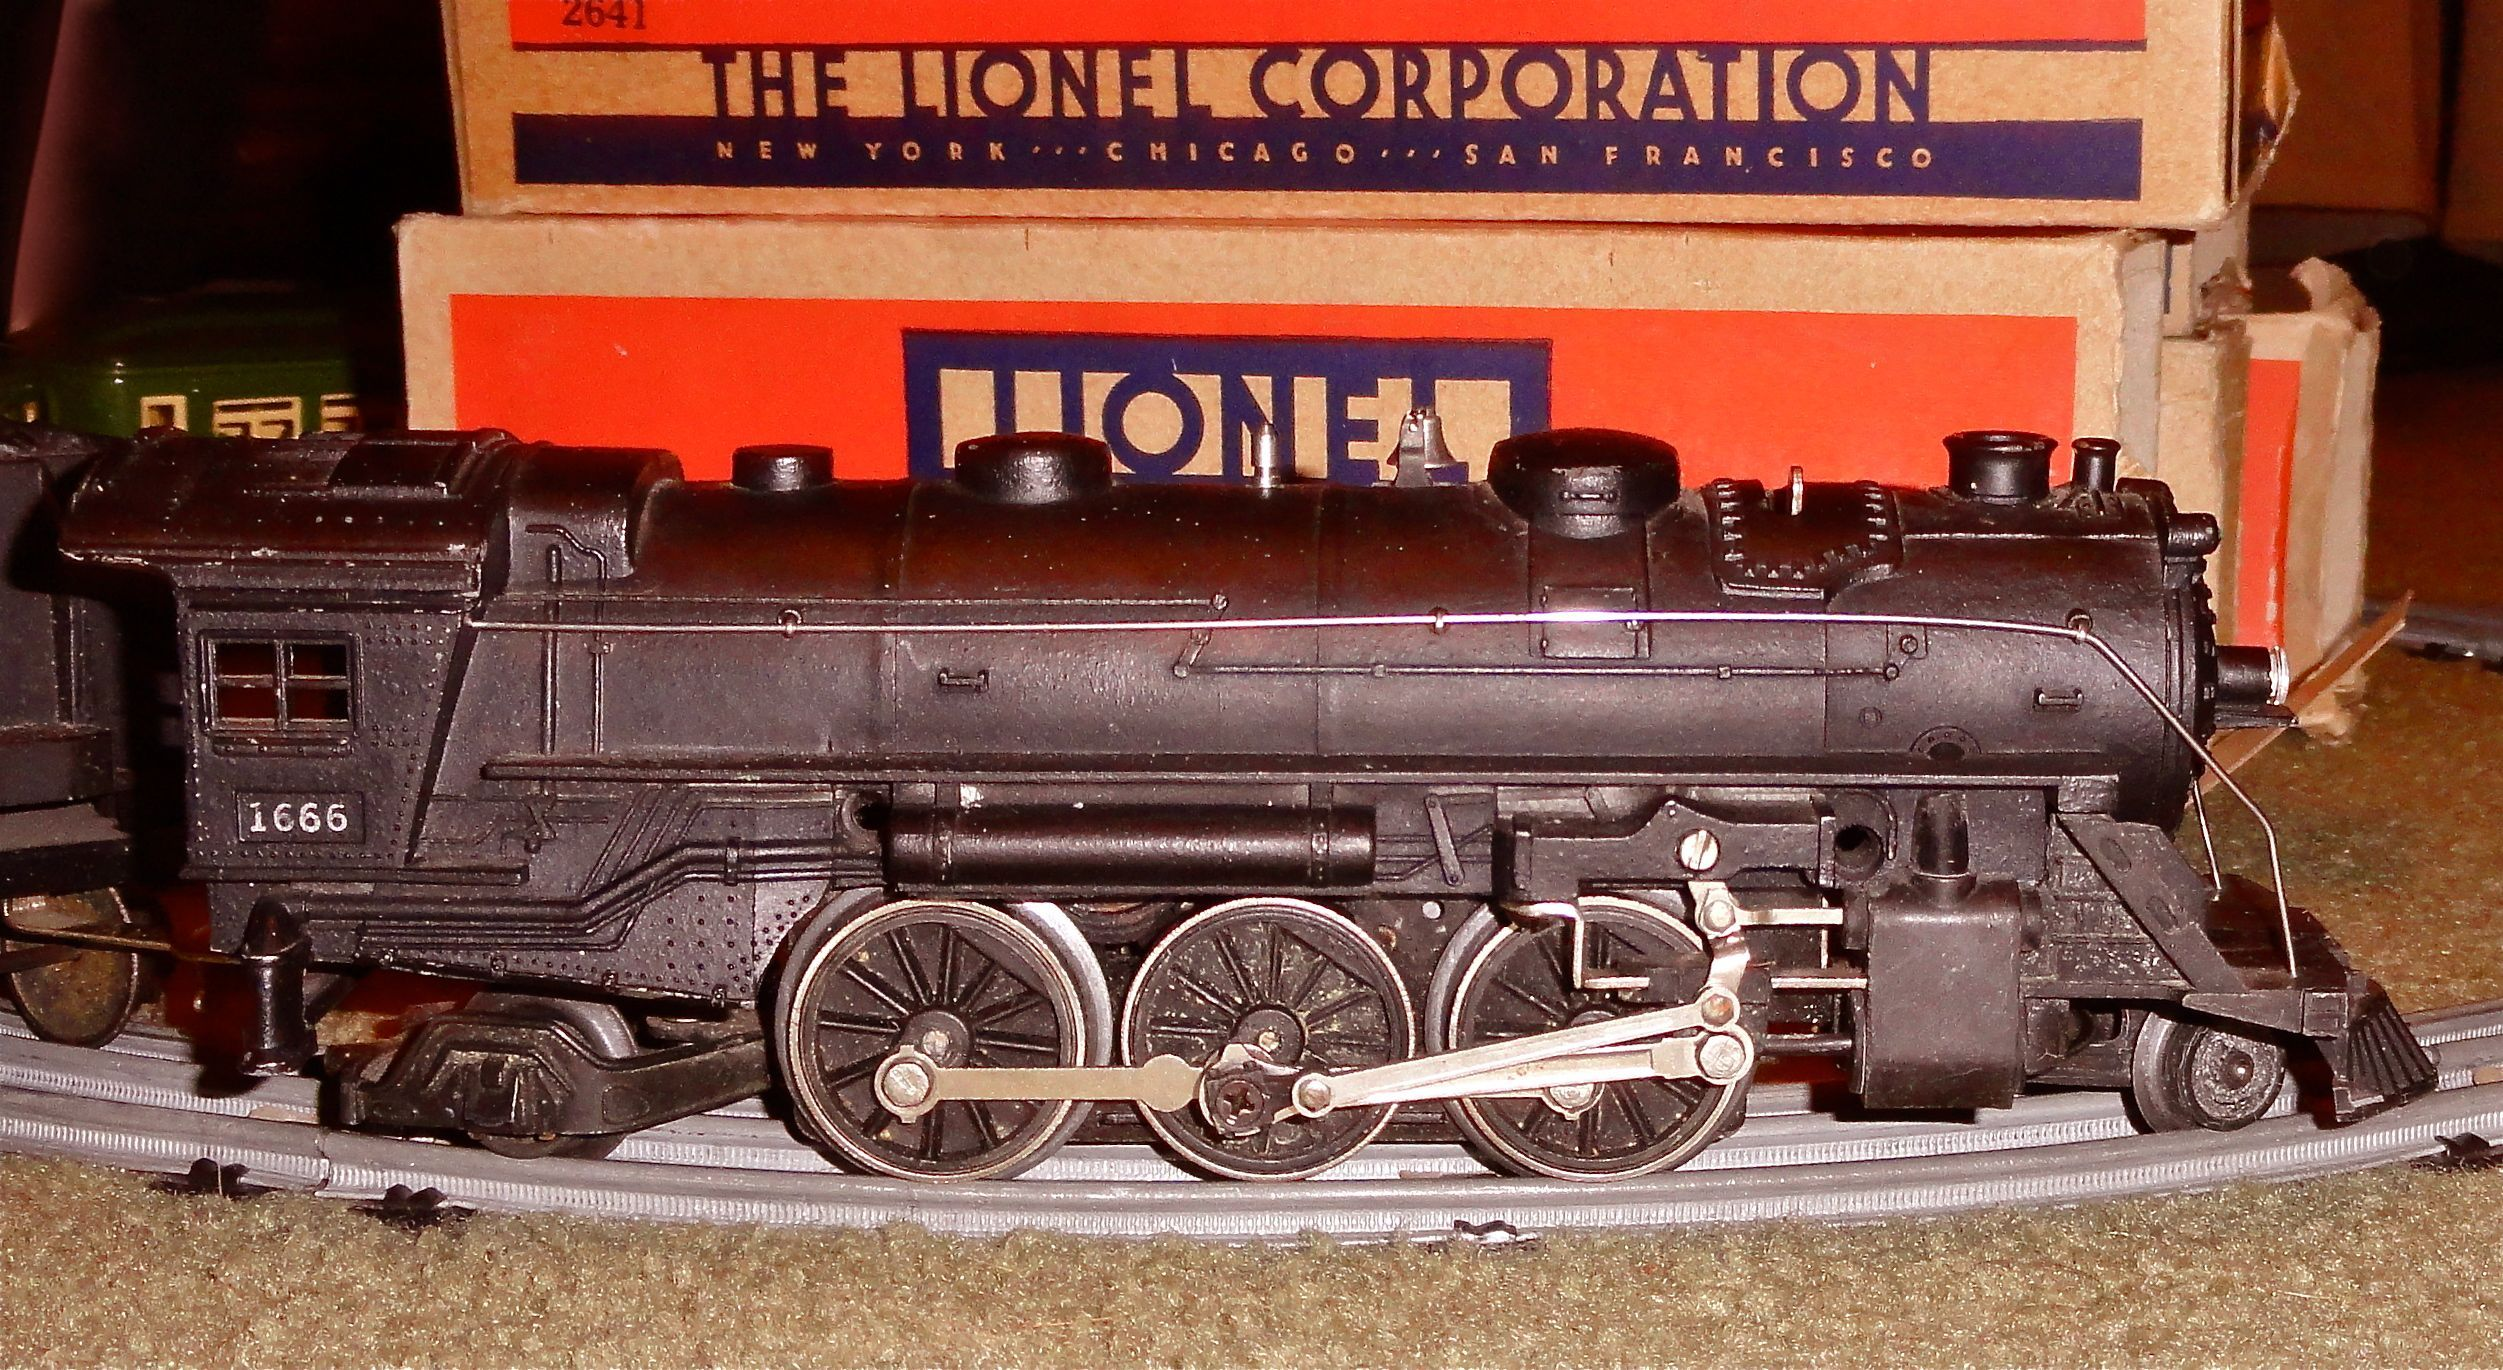 Vintage Lionel Train Sets You Can Click On The Photo To Enlarge Full Image Size